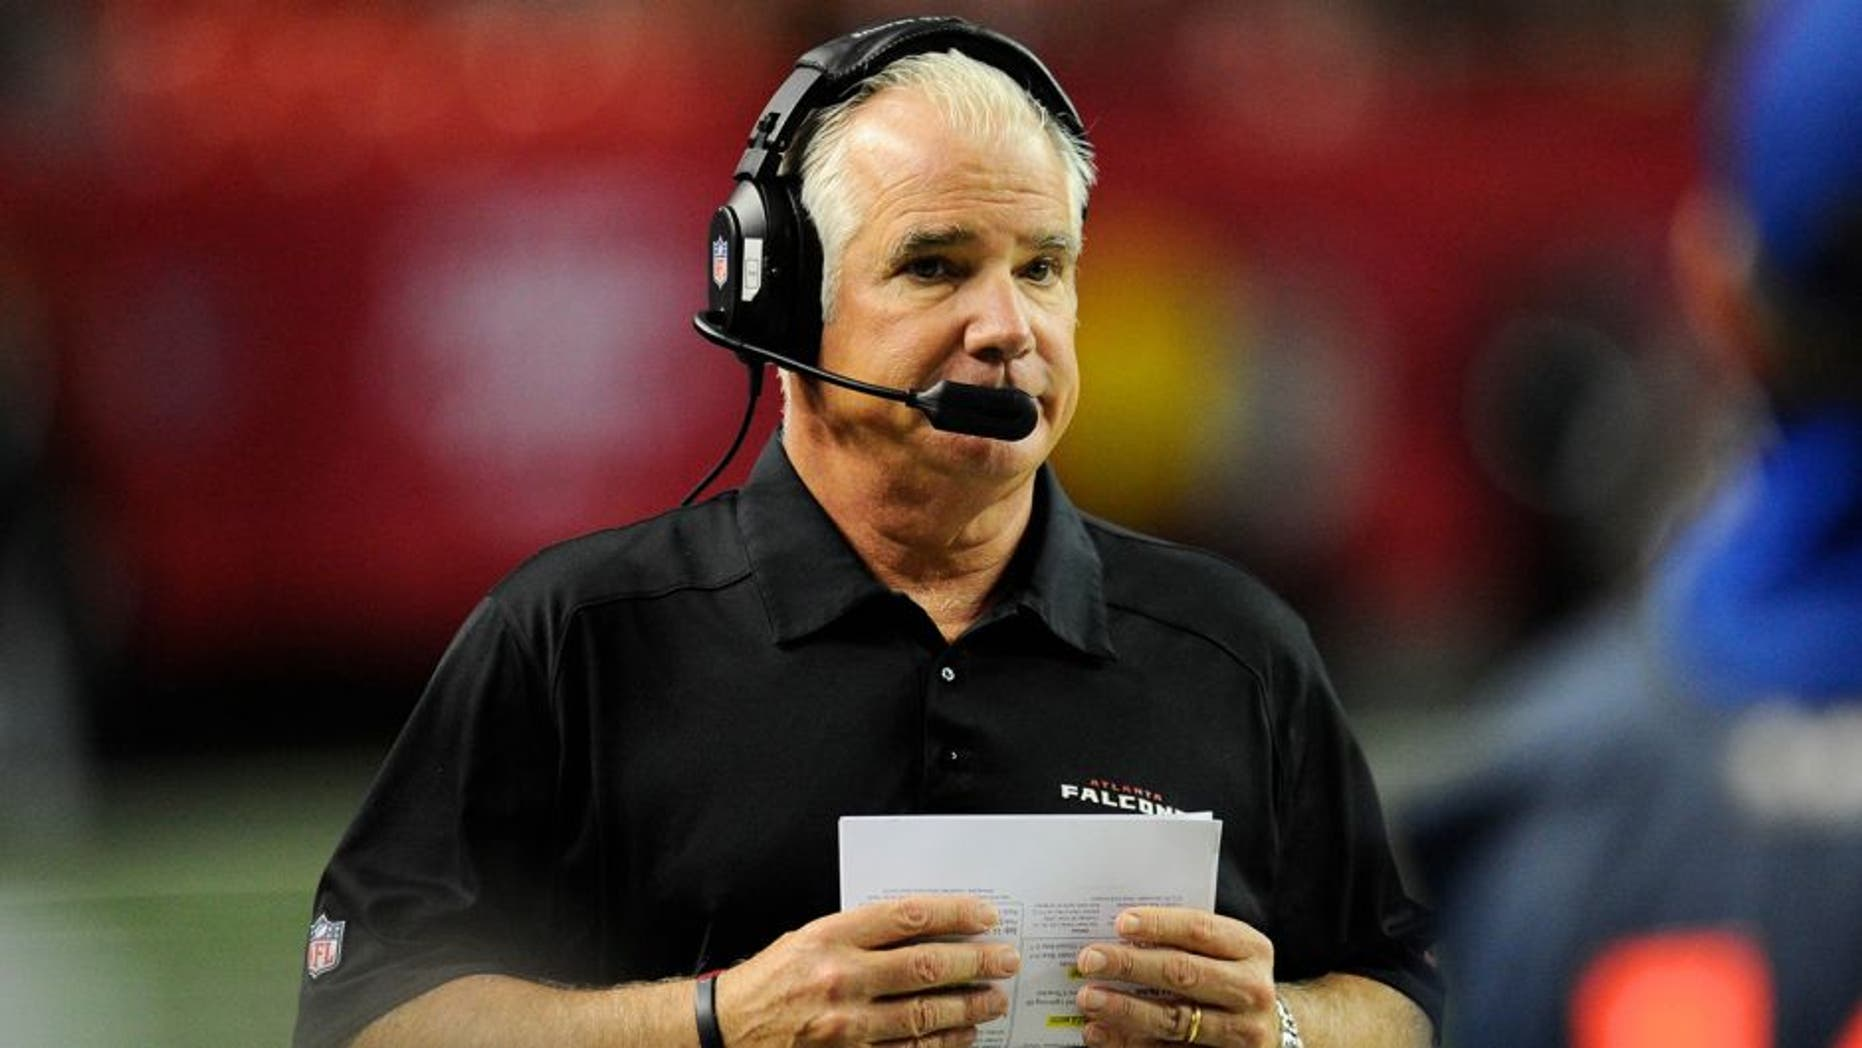 Dec 15, 2013; Atlanta, GA, USA; Atlanta Falcons head coach Mike Smith shown on the sideline against the Washington Redskins during the second half at the Georgia Dome. The Falcons defeated the Redskins 27-26. Mandatory Credit: Dale Zanine-USA TODAY Sports